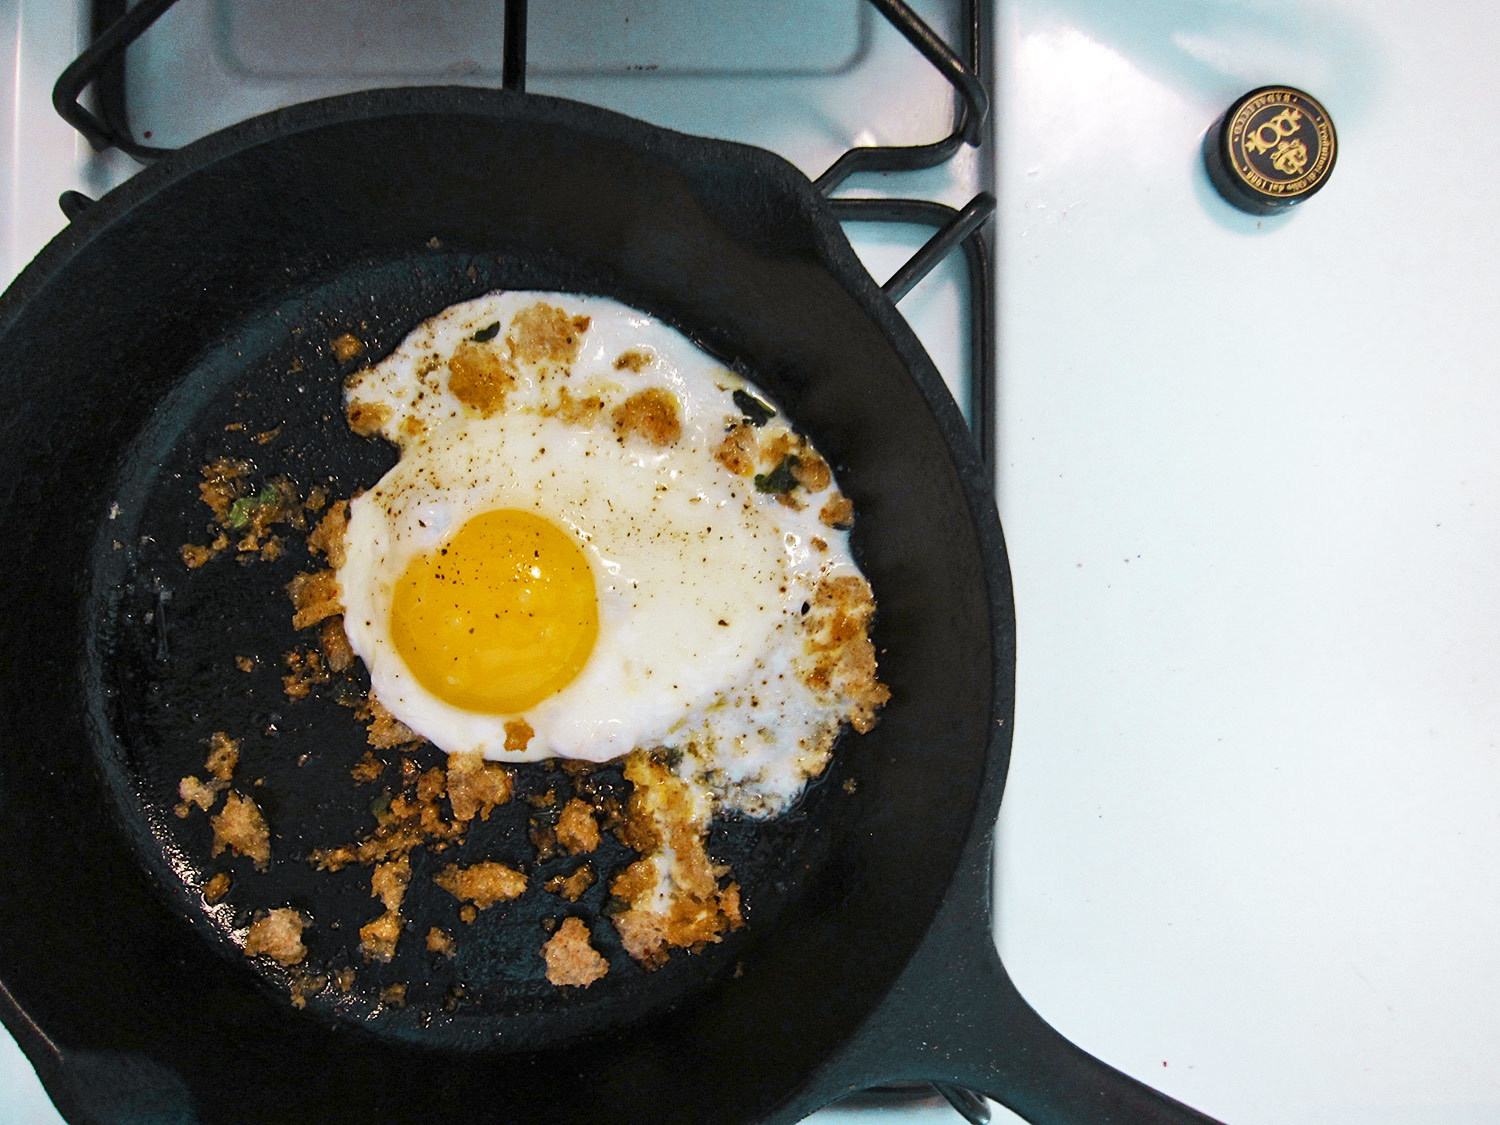 The Zuni fried egg with breadcrumbs, at its beginning